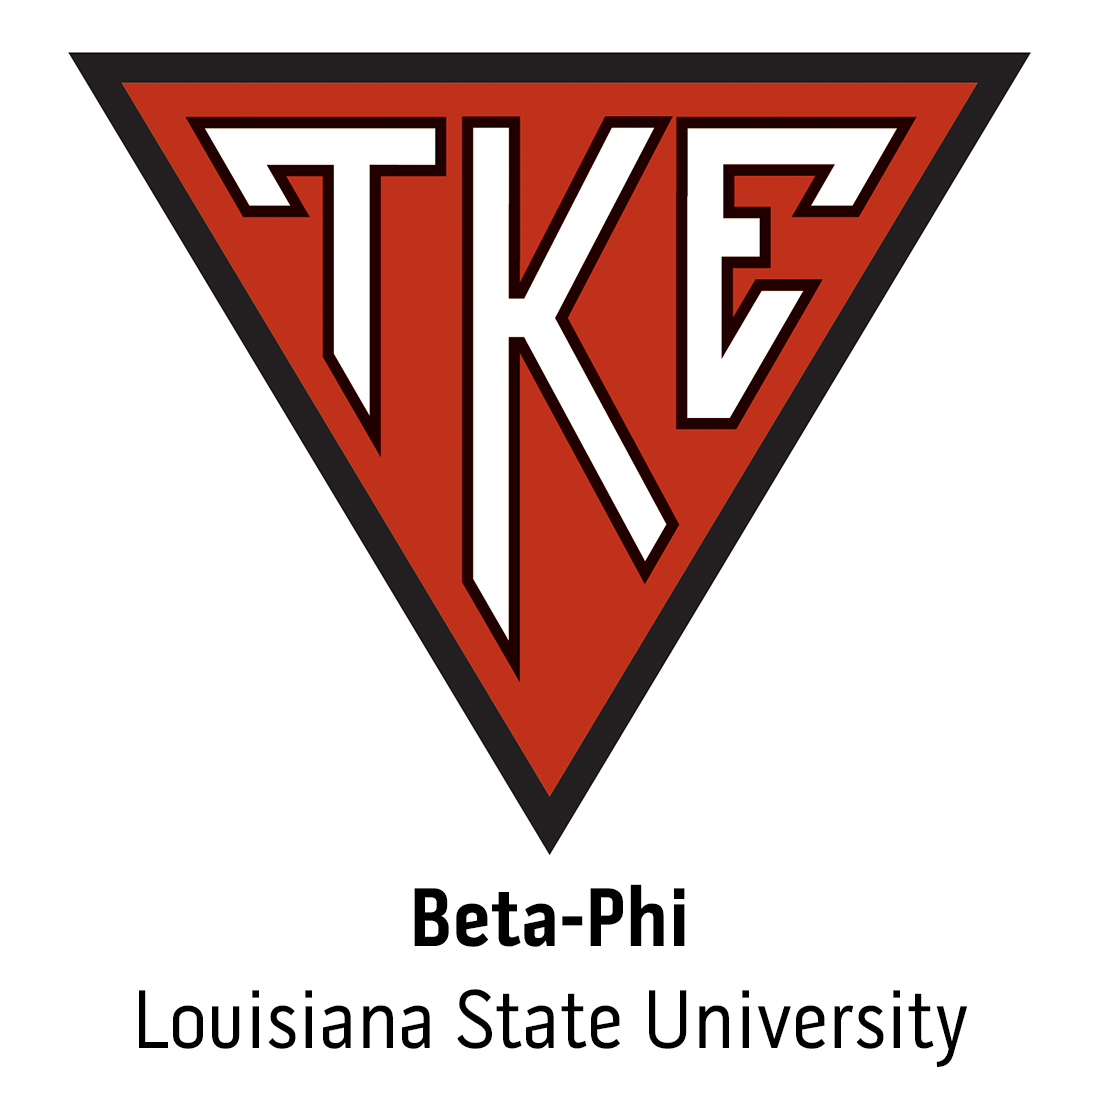 Beta-Phi Chapter at Louisiana State University